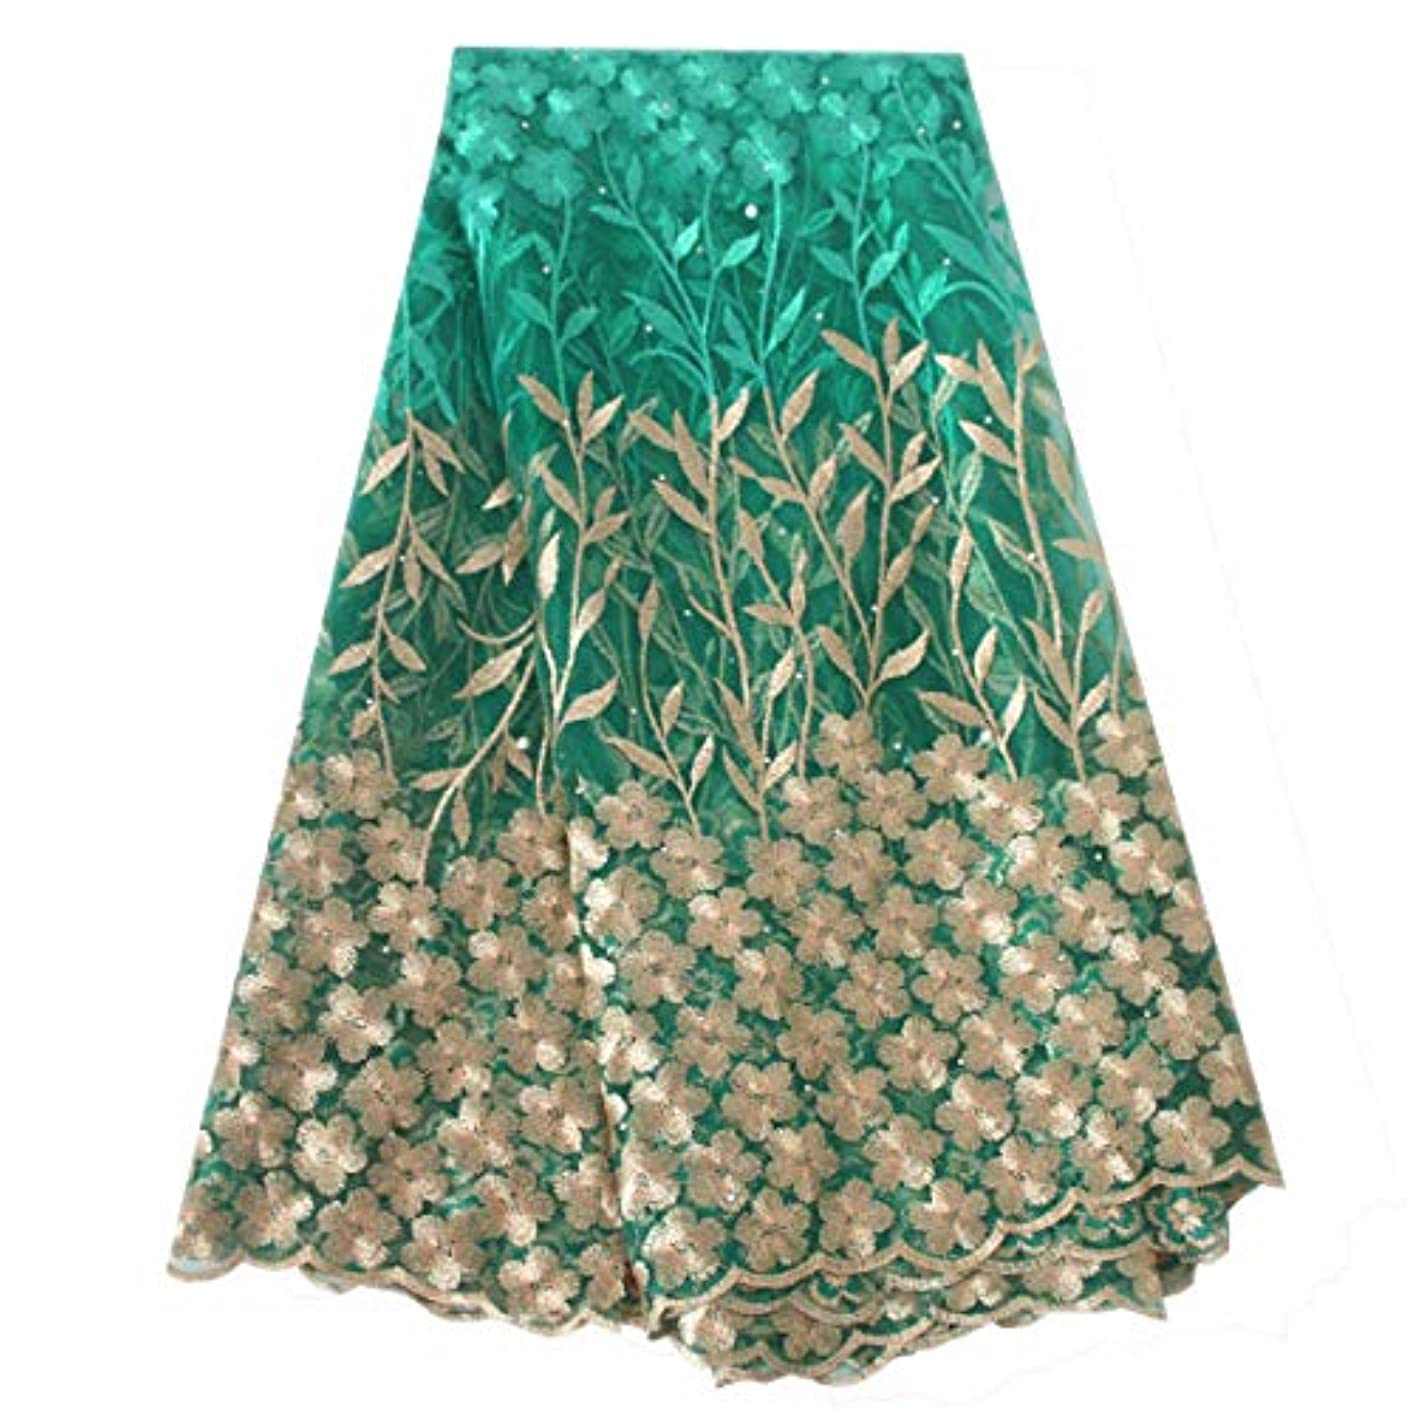 Lacerain 5 Yards African Lace Fabric Embroidered Lace Fabric African Embroidery Material Wedding Dress Shirt Skirt (Green and Yellow)